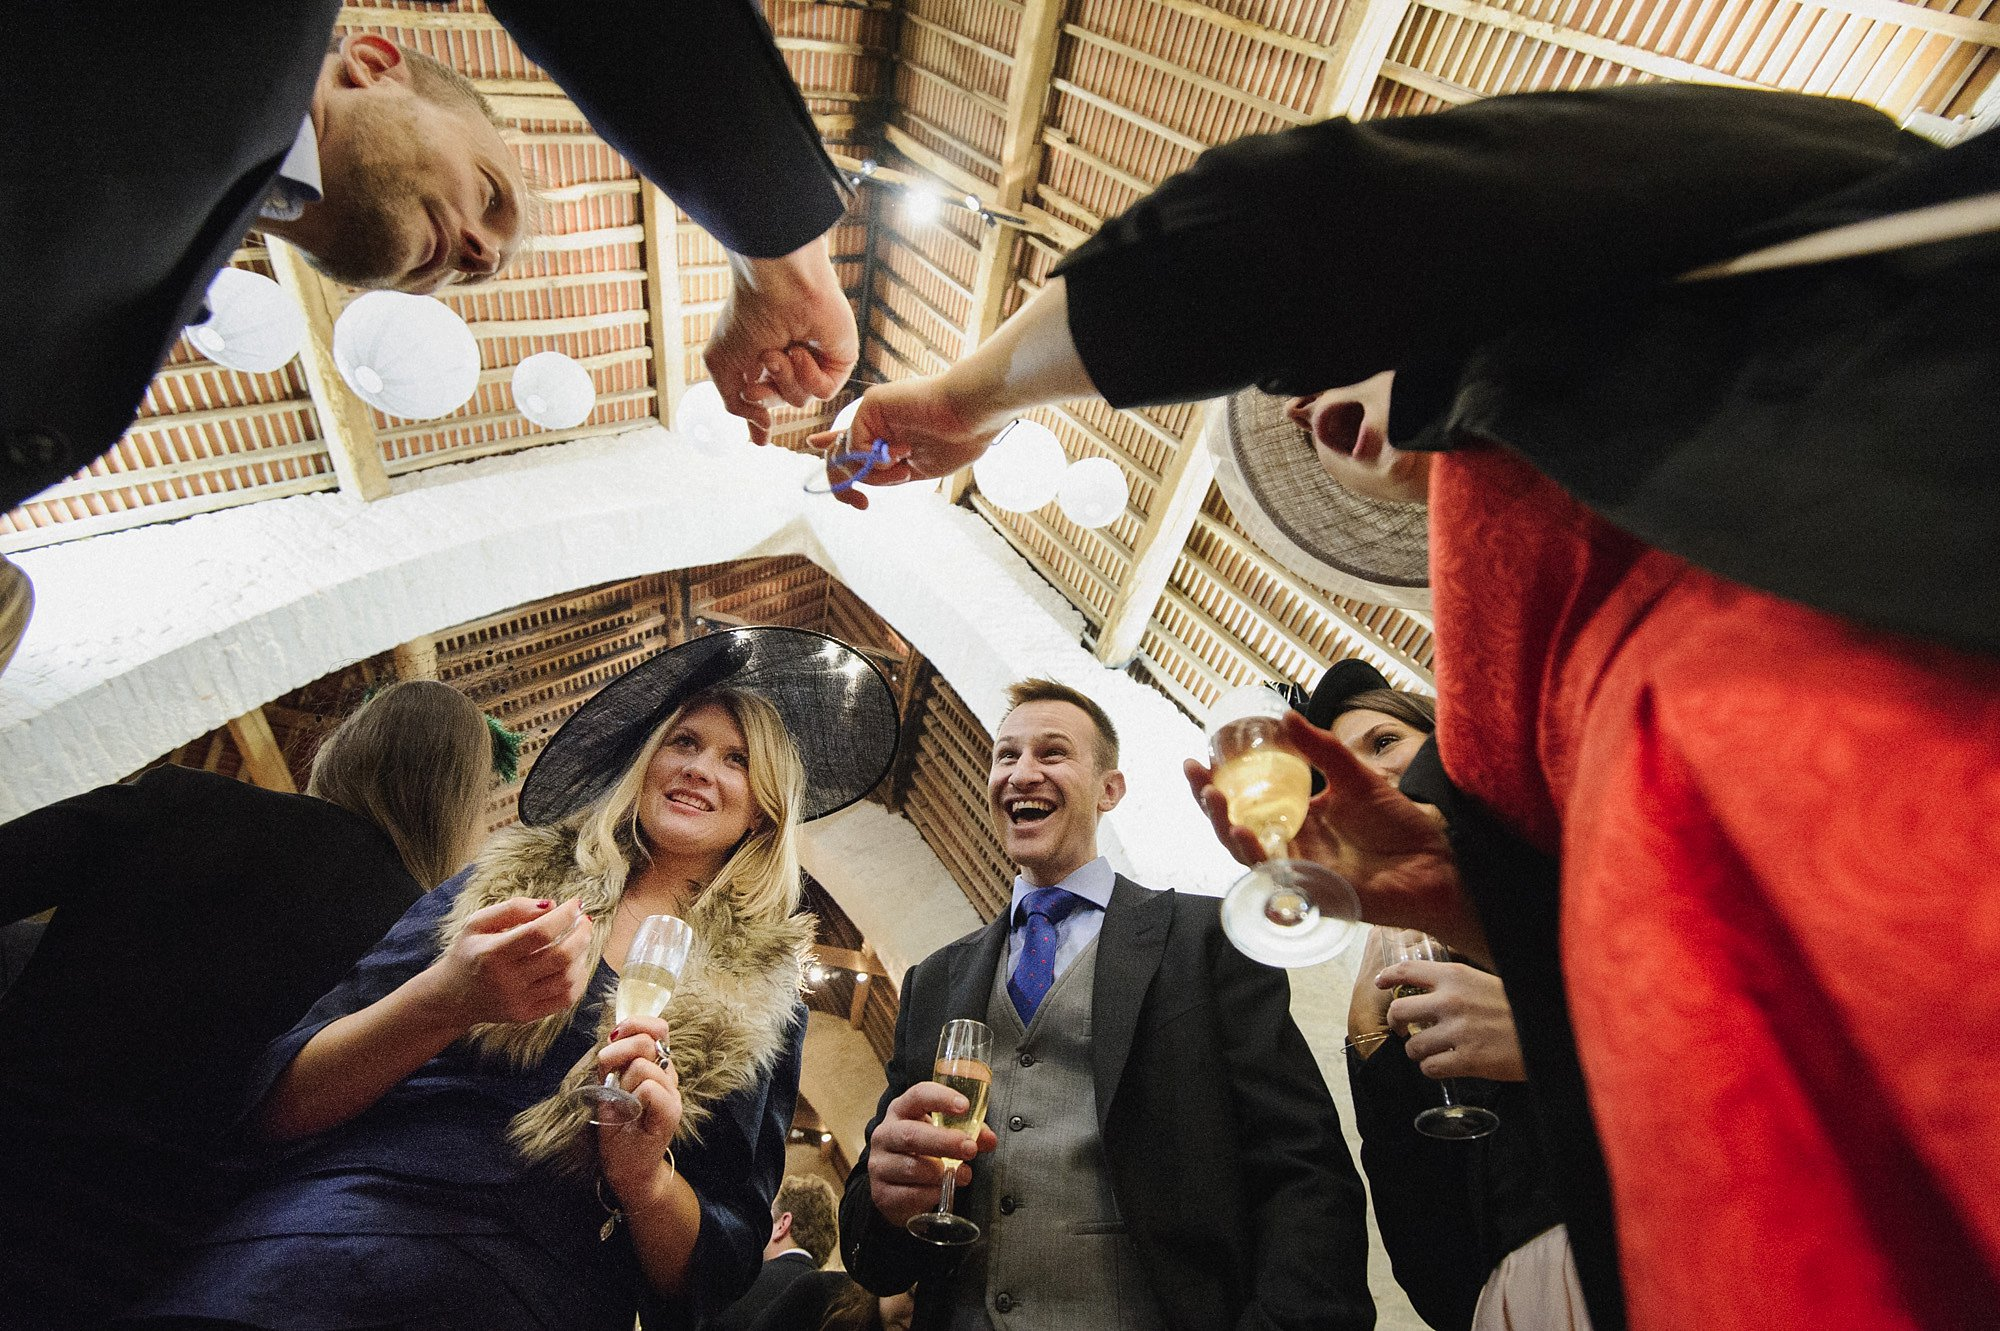 guests look on with amazement at the wedding magician's tricks